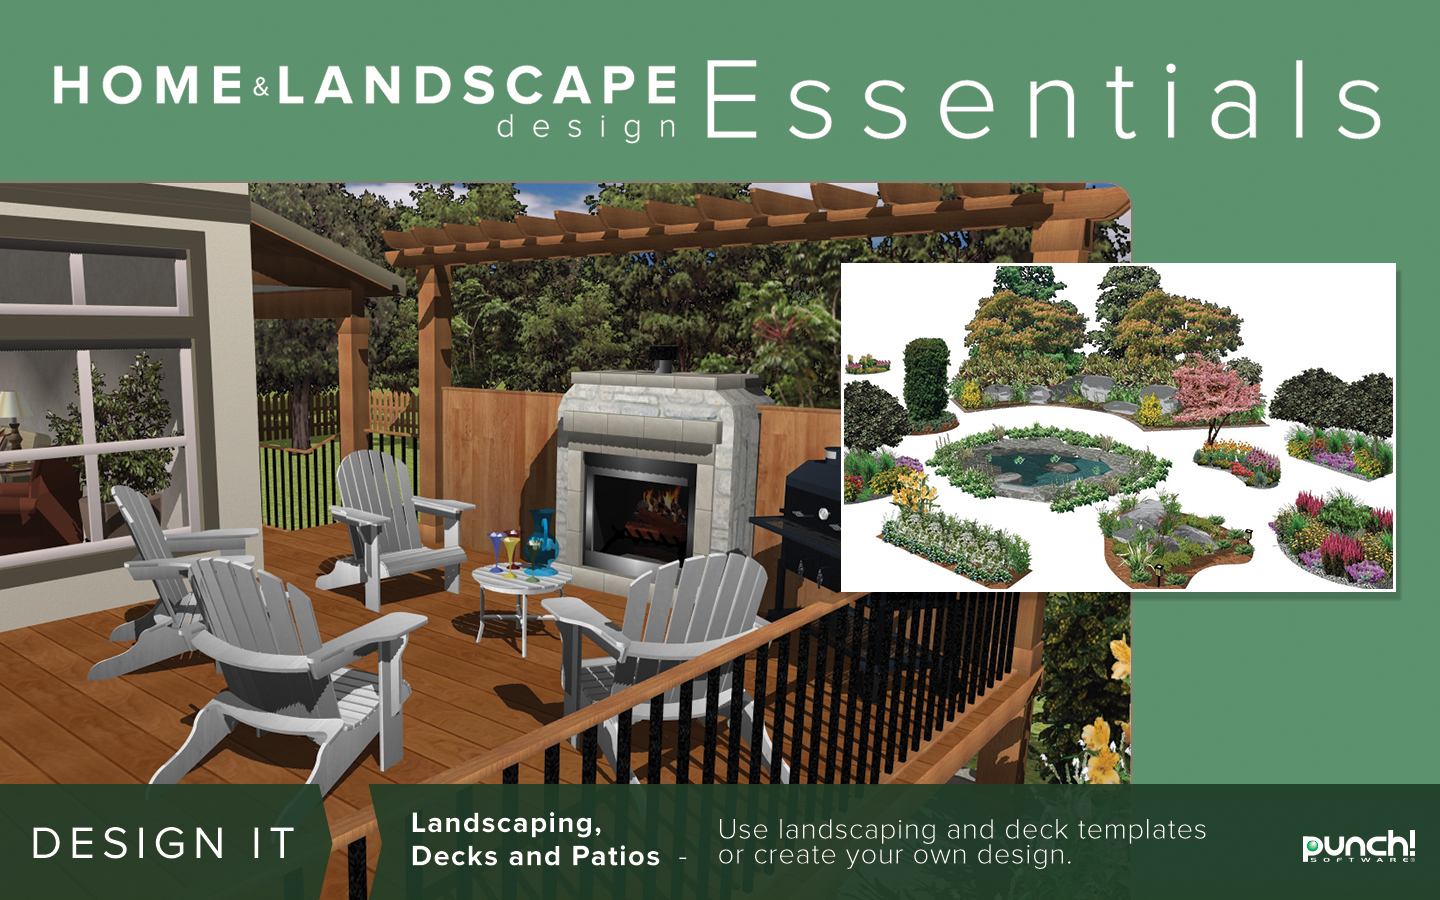 Punch Home Landscape Design Essentials V19 For Windows Pc Download Hardware Tools Punches